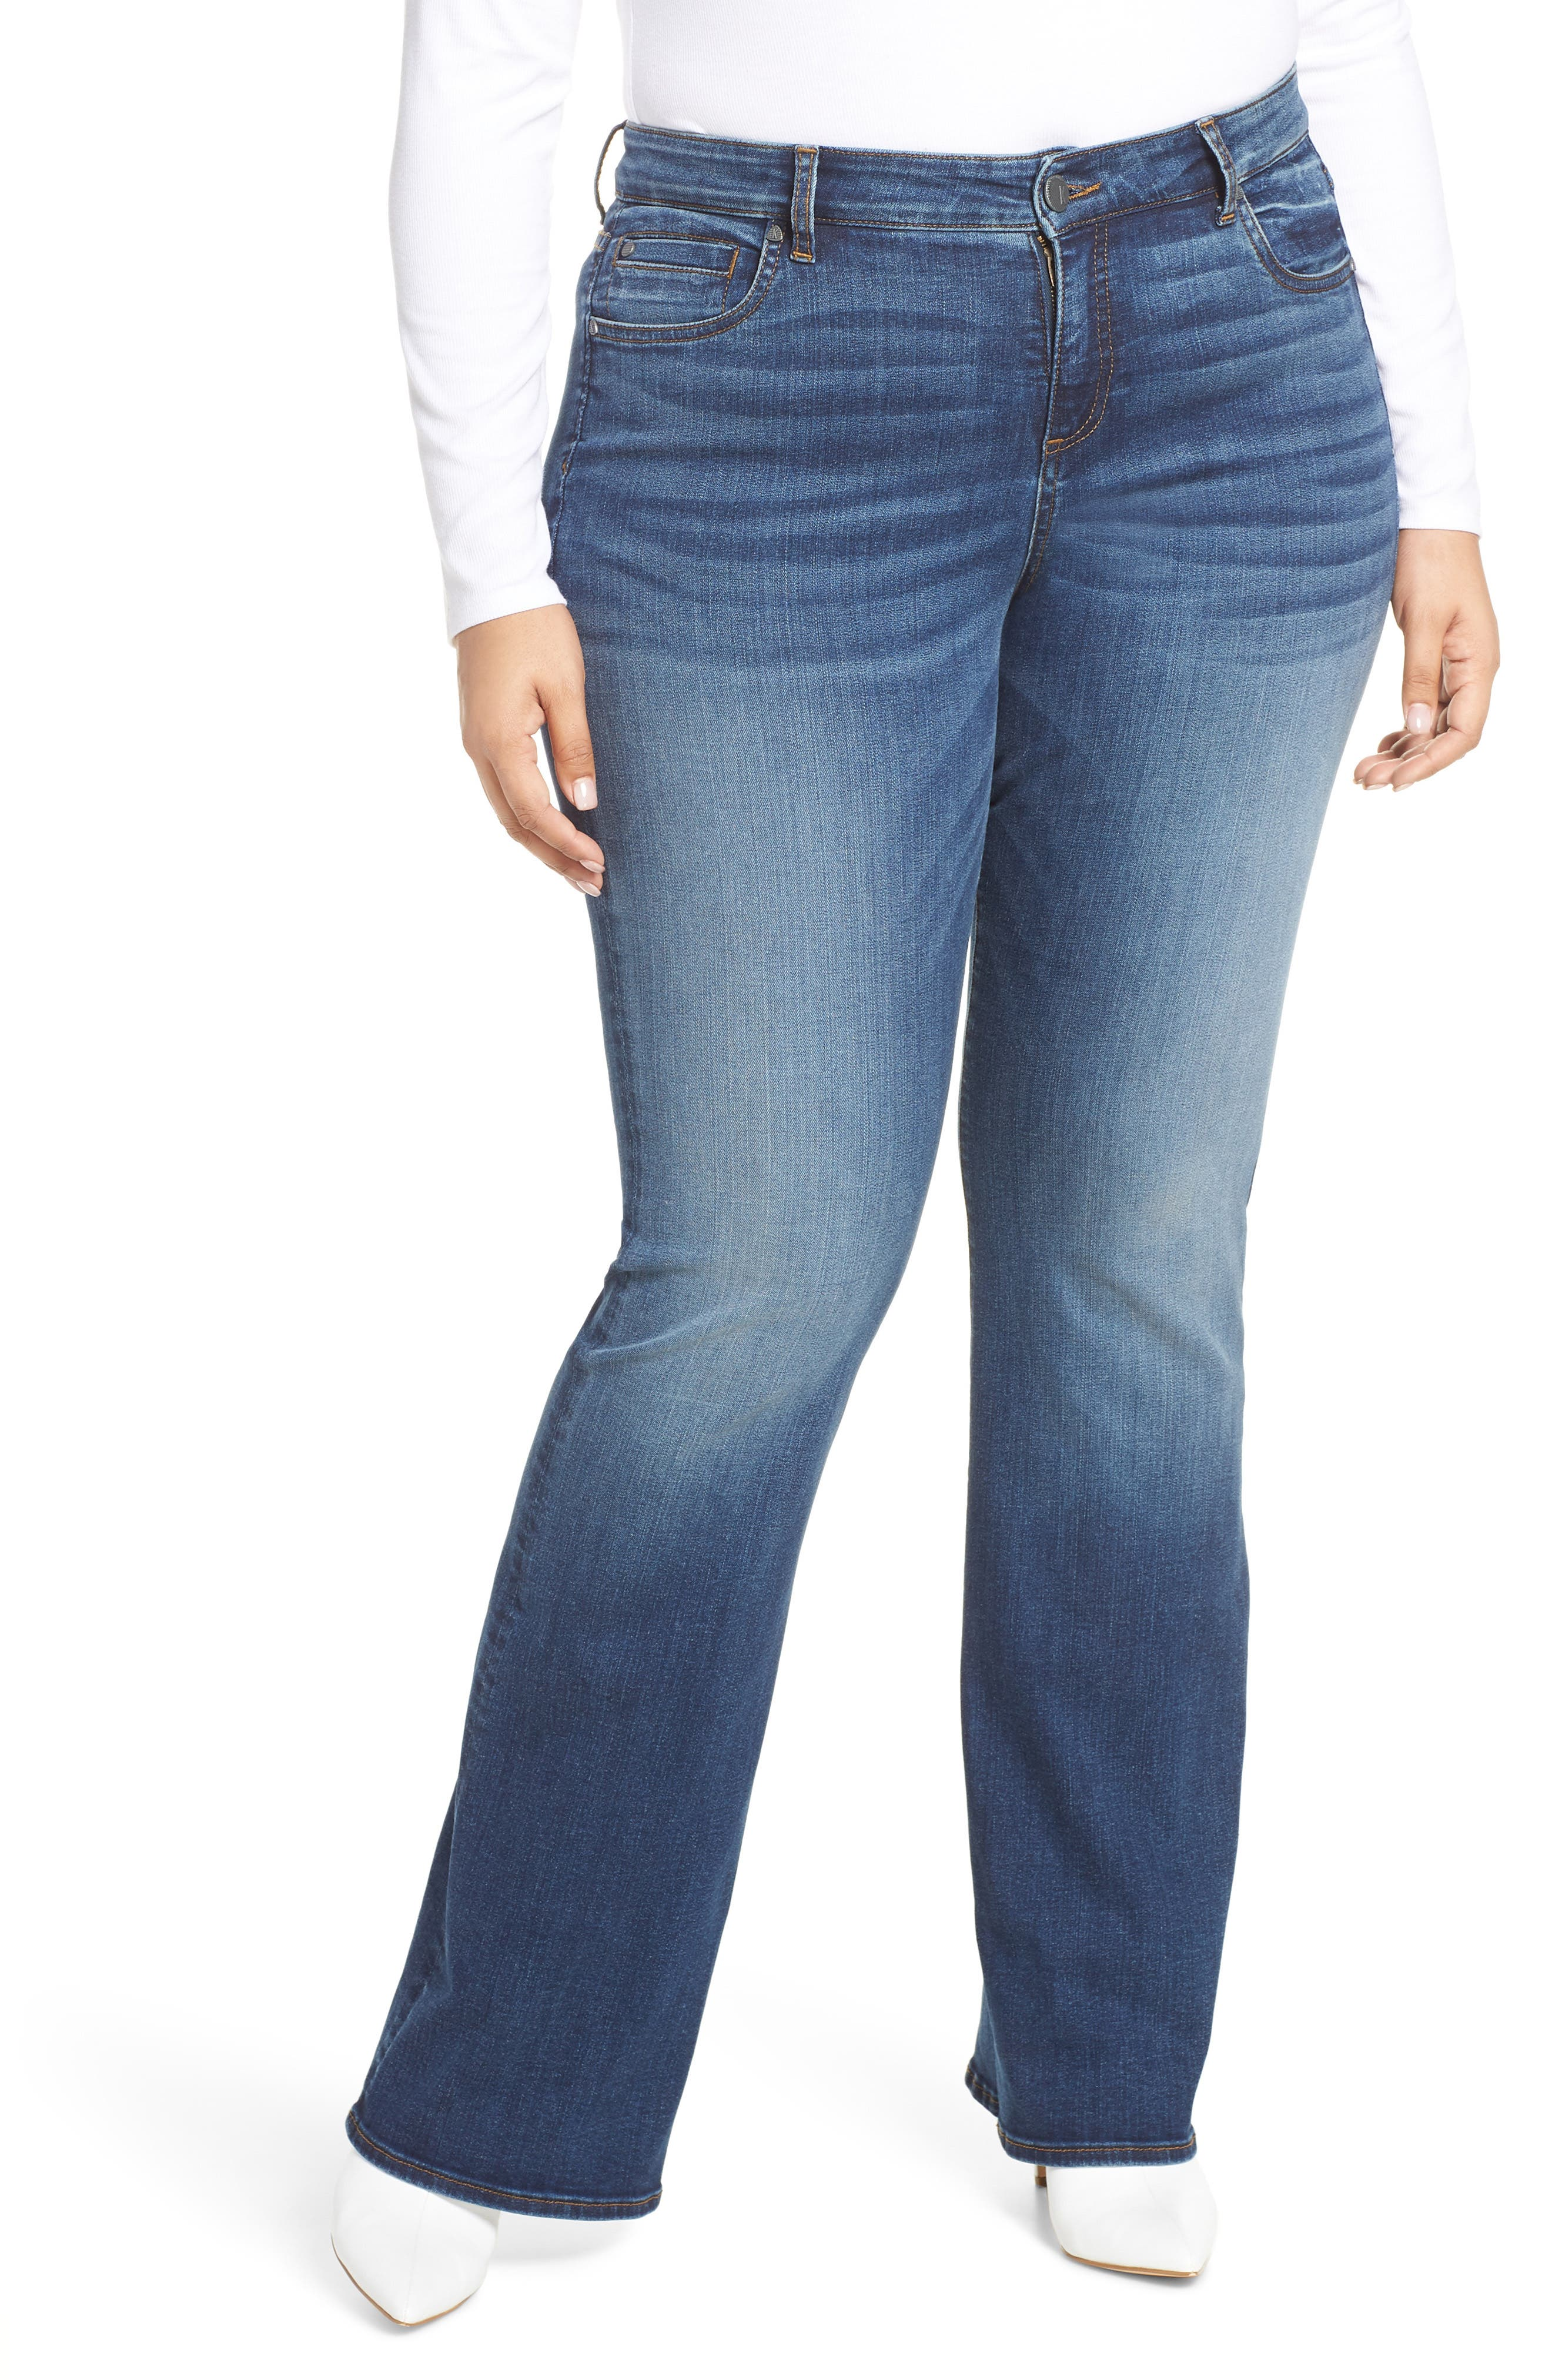 Plus Size Kut From The Kloth Natalie Bootleg Jeans, Blue